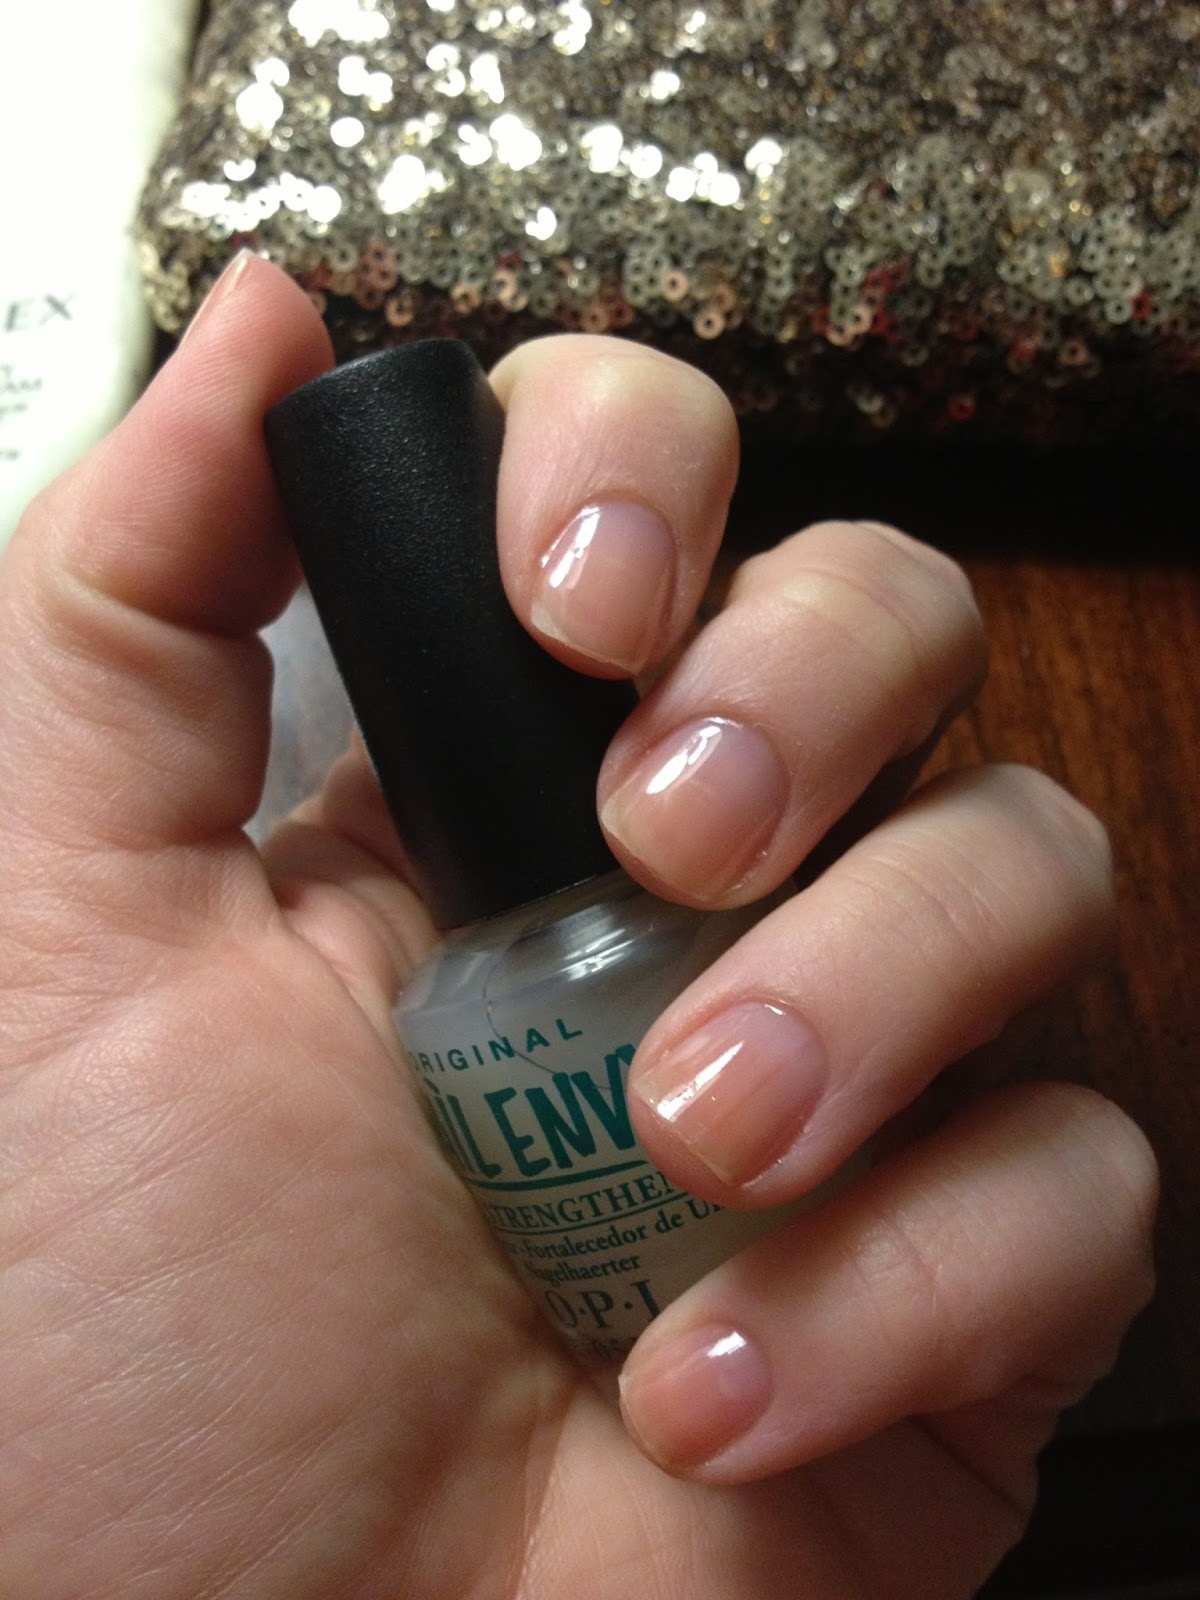 Nail Treatments - At the Pink of Perfection